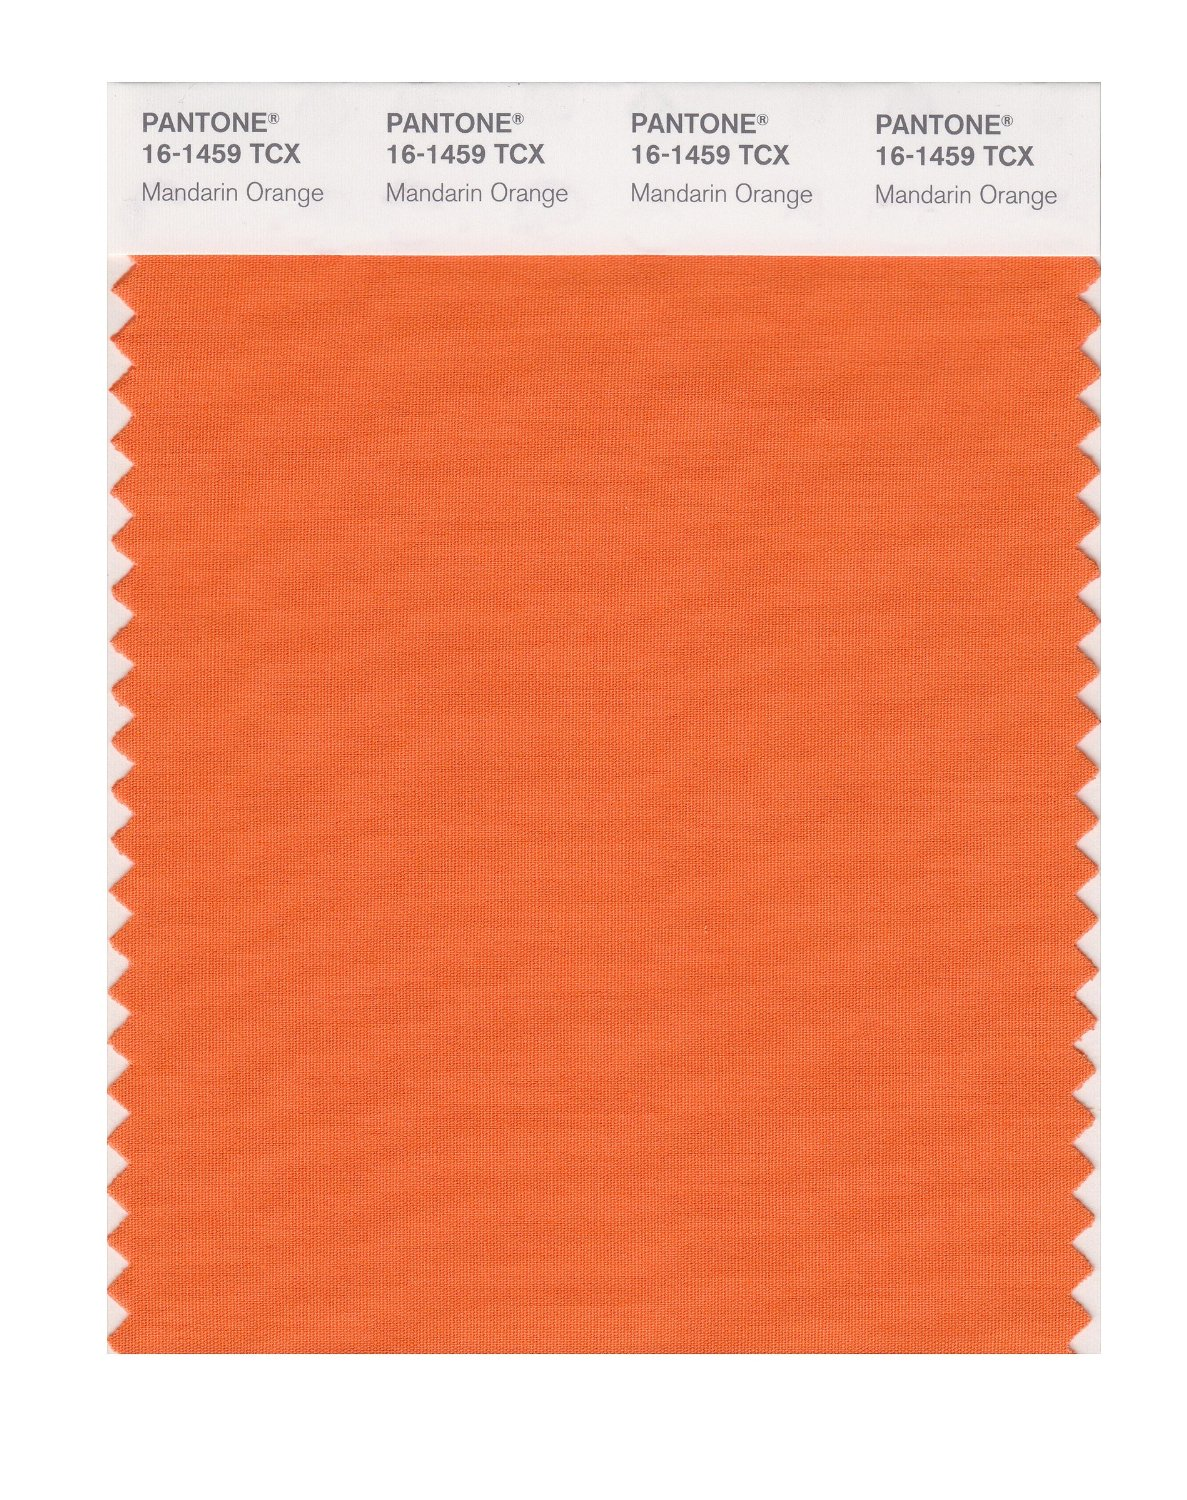 Pantone Smart Swatch 16-1459 Mandarin Orange